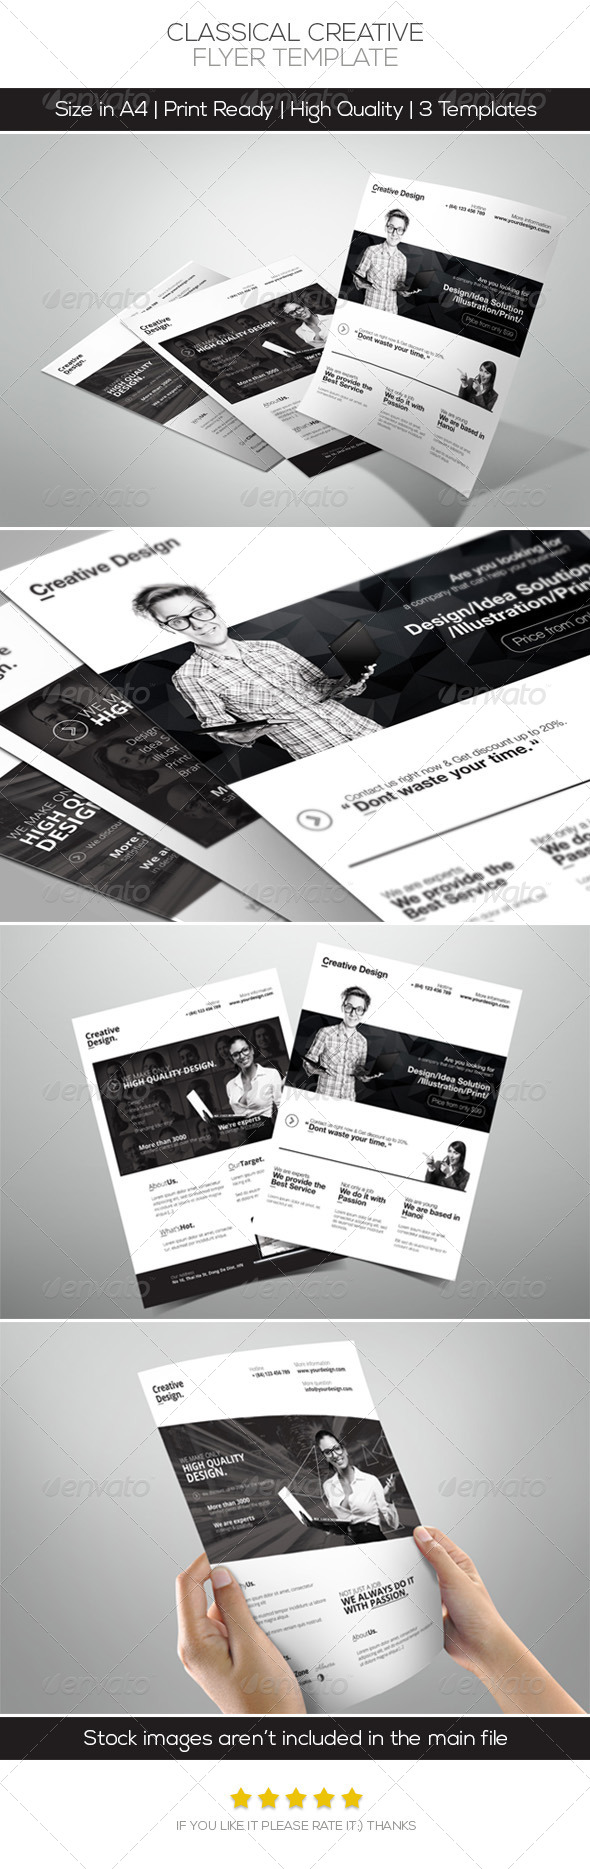 GraphicRiver Classical Creative Design Flyer 6345218